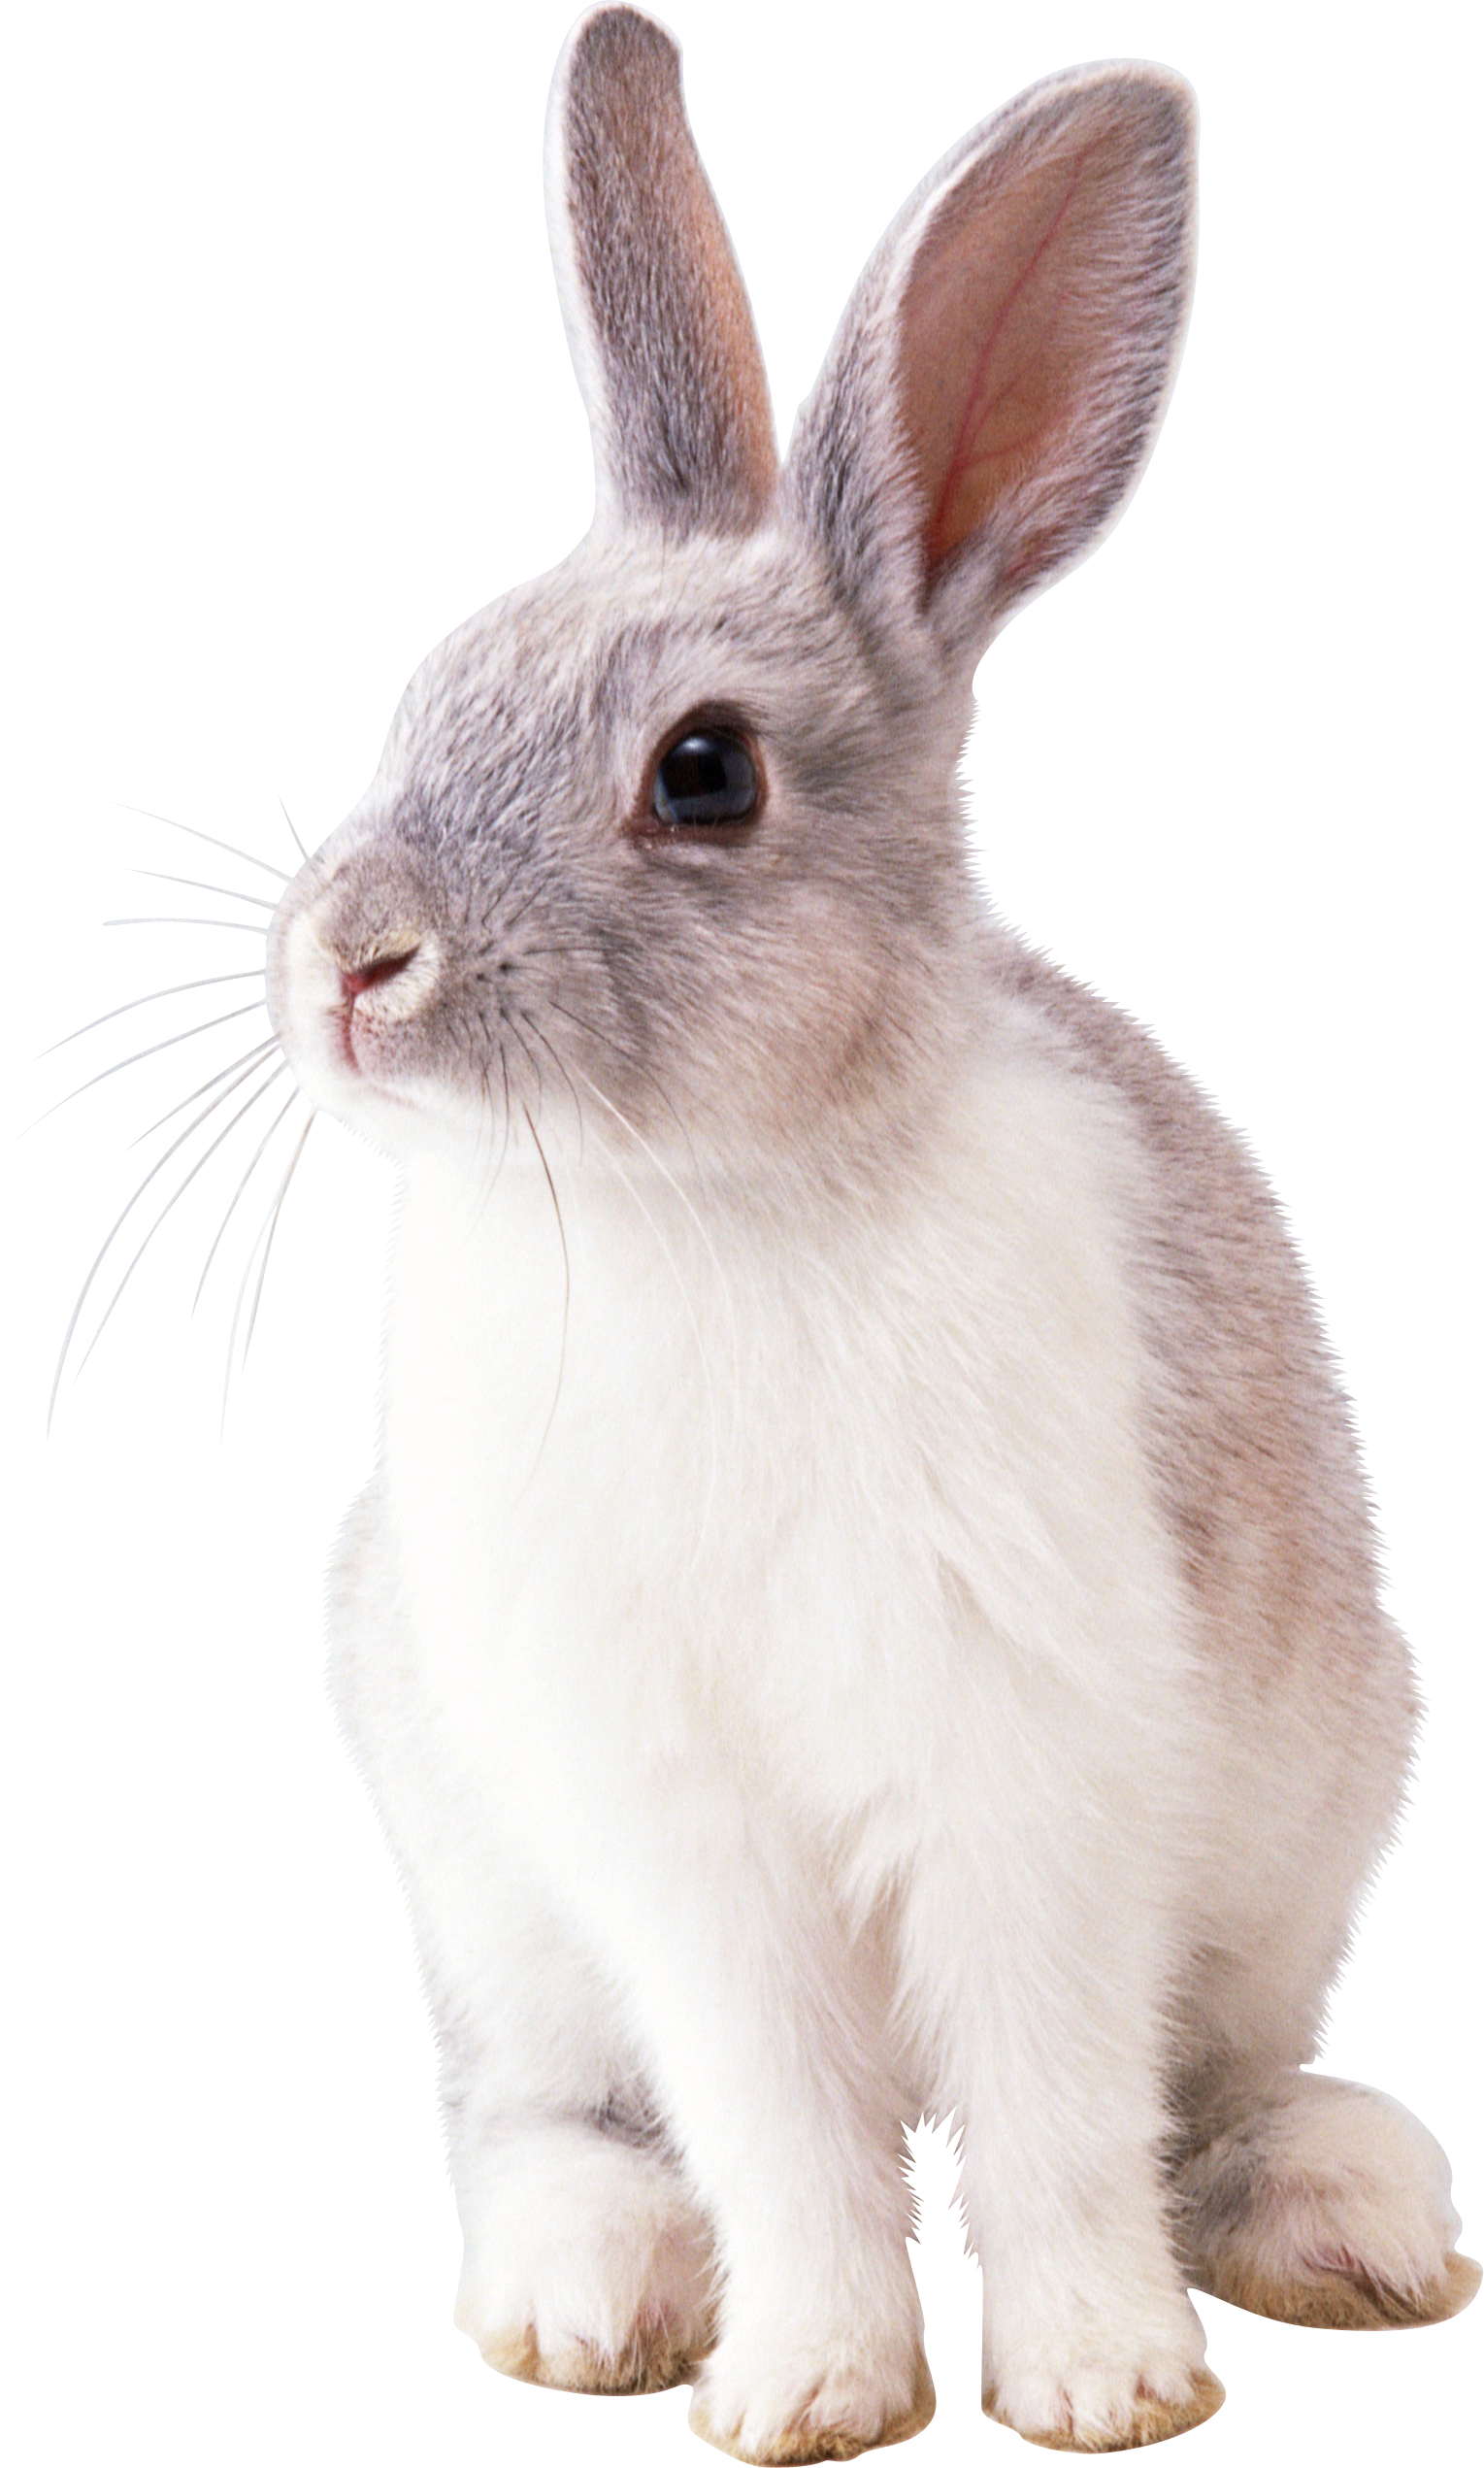 Bunny rabbit png. Images transparent free download